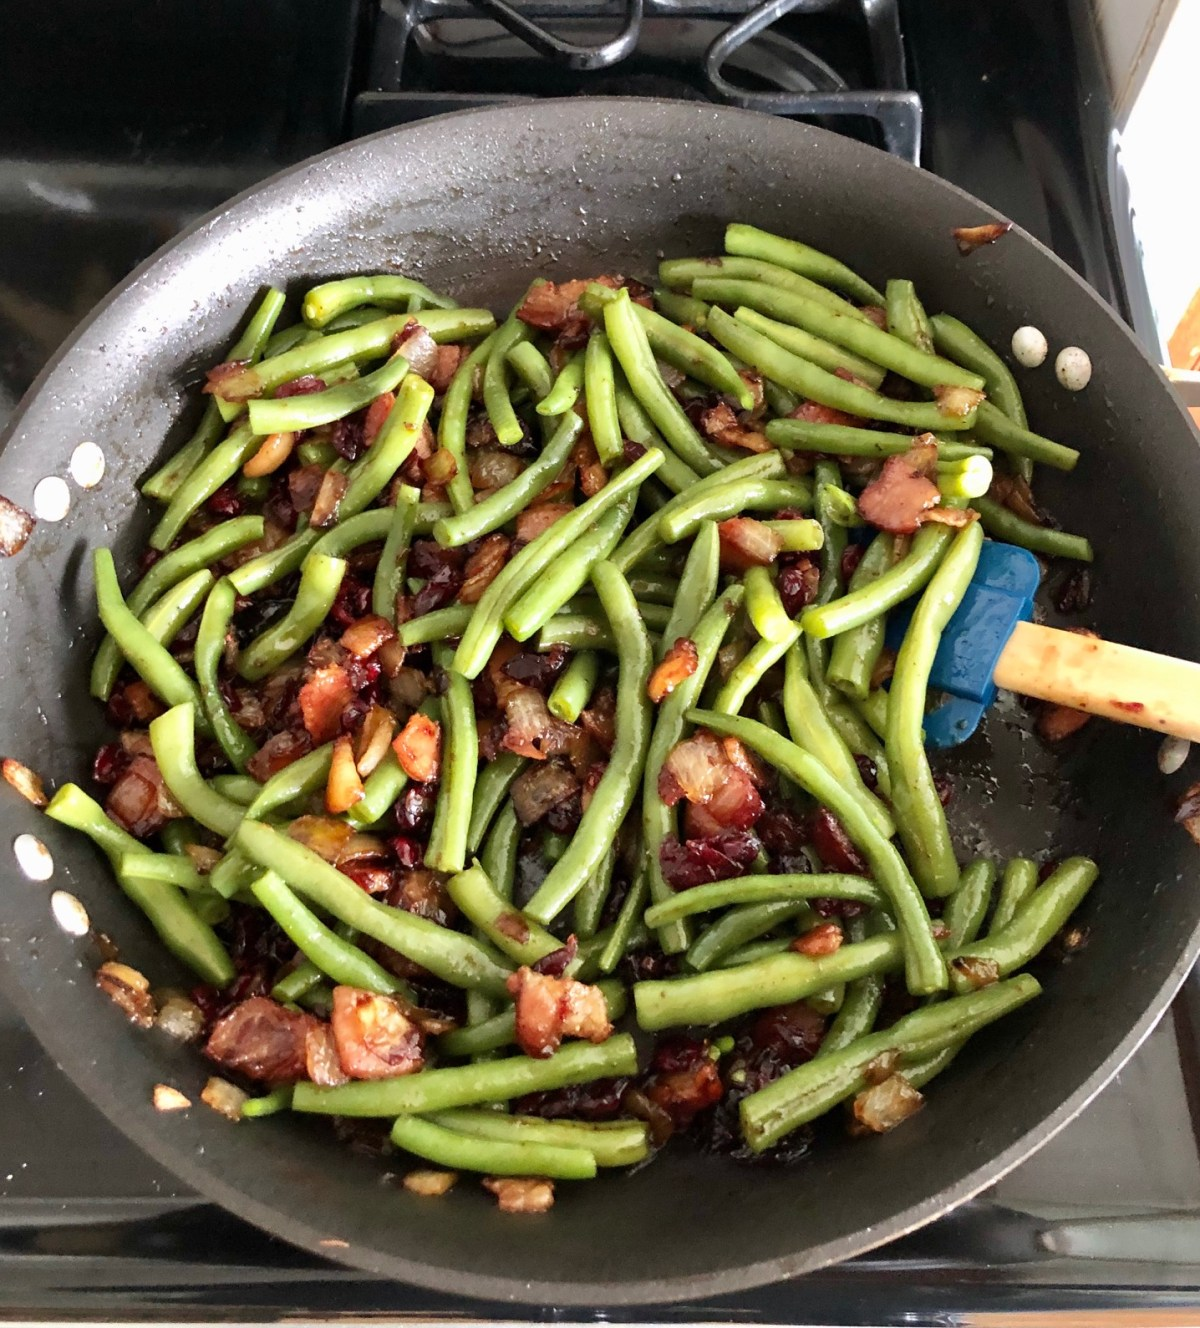 Green beans are added to the mix in a large skillet. #tennesseeapplerecipes #greenbeans #glazedgreenbeans #holidaysidedish #vegetablesidedish